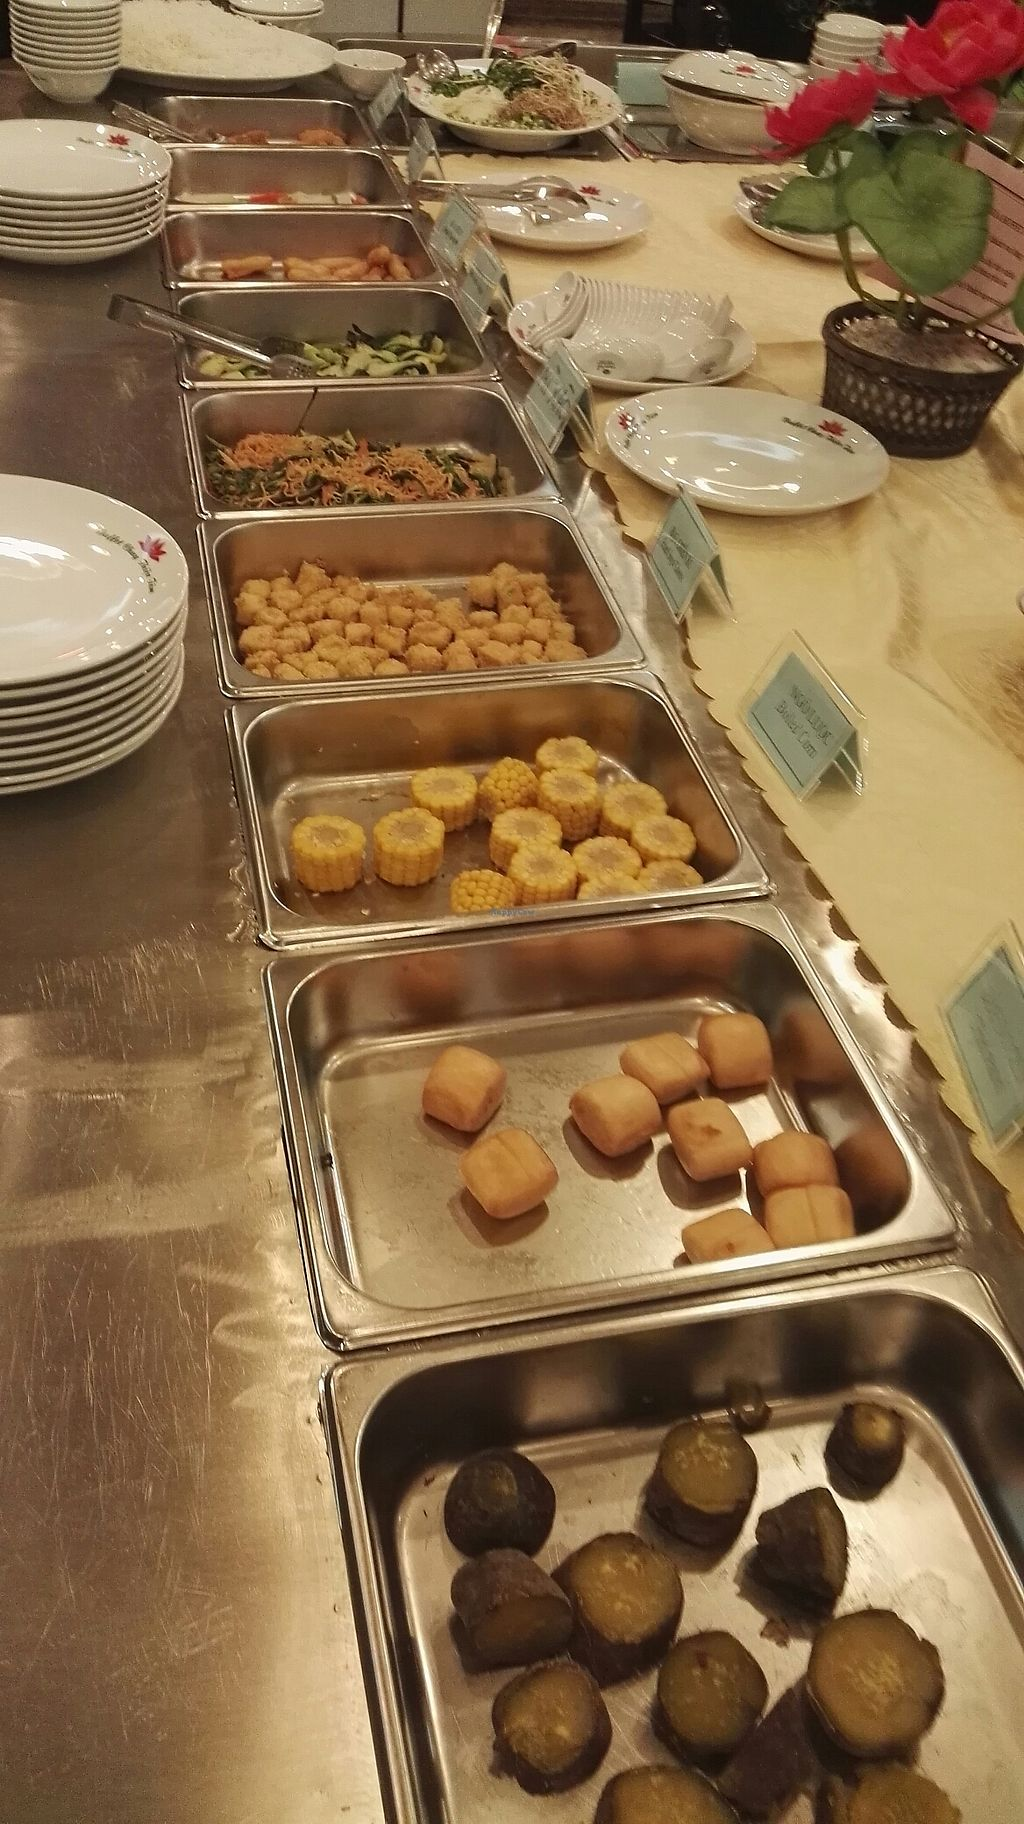 """Photo of Nha Hang Buffet Chay Thien Tam  by <a href=""""/members/profile/Valerius"""">Valerius</a> <br/>small part of the large buffet <br/> July 12, 2017  - <a href='/contact/abuse/image/92602/279454'>Report</a>"""